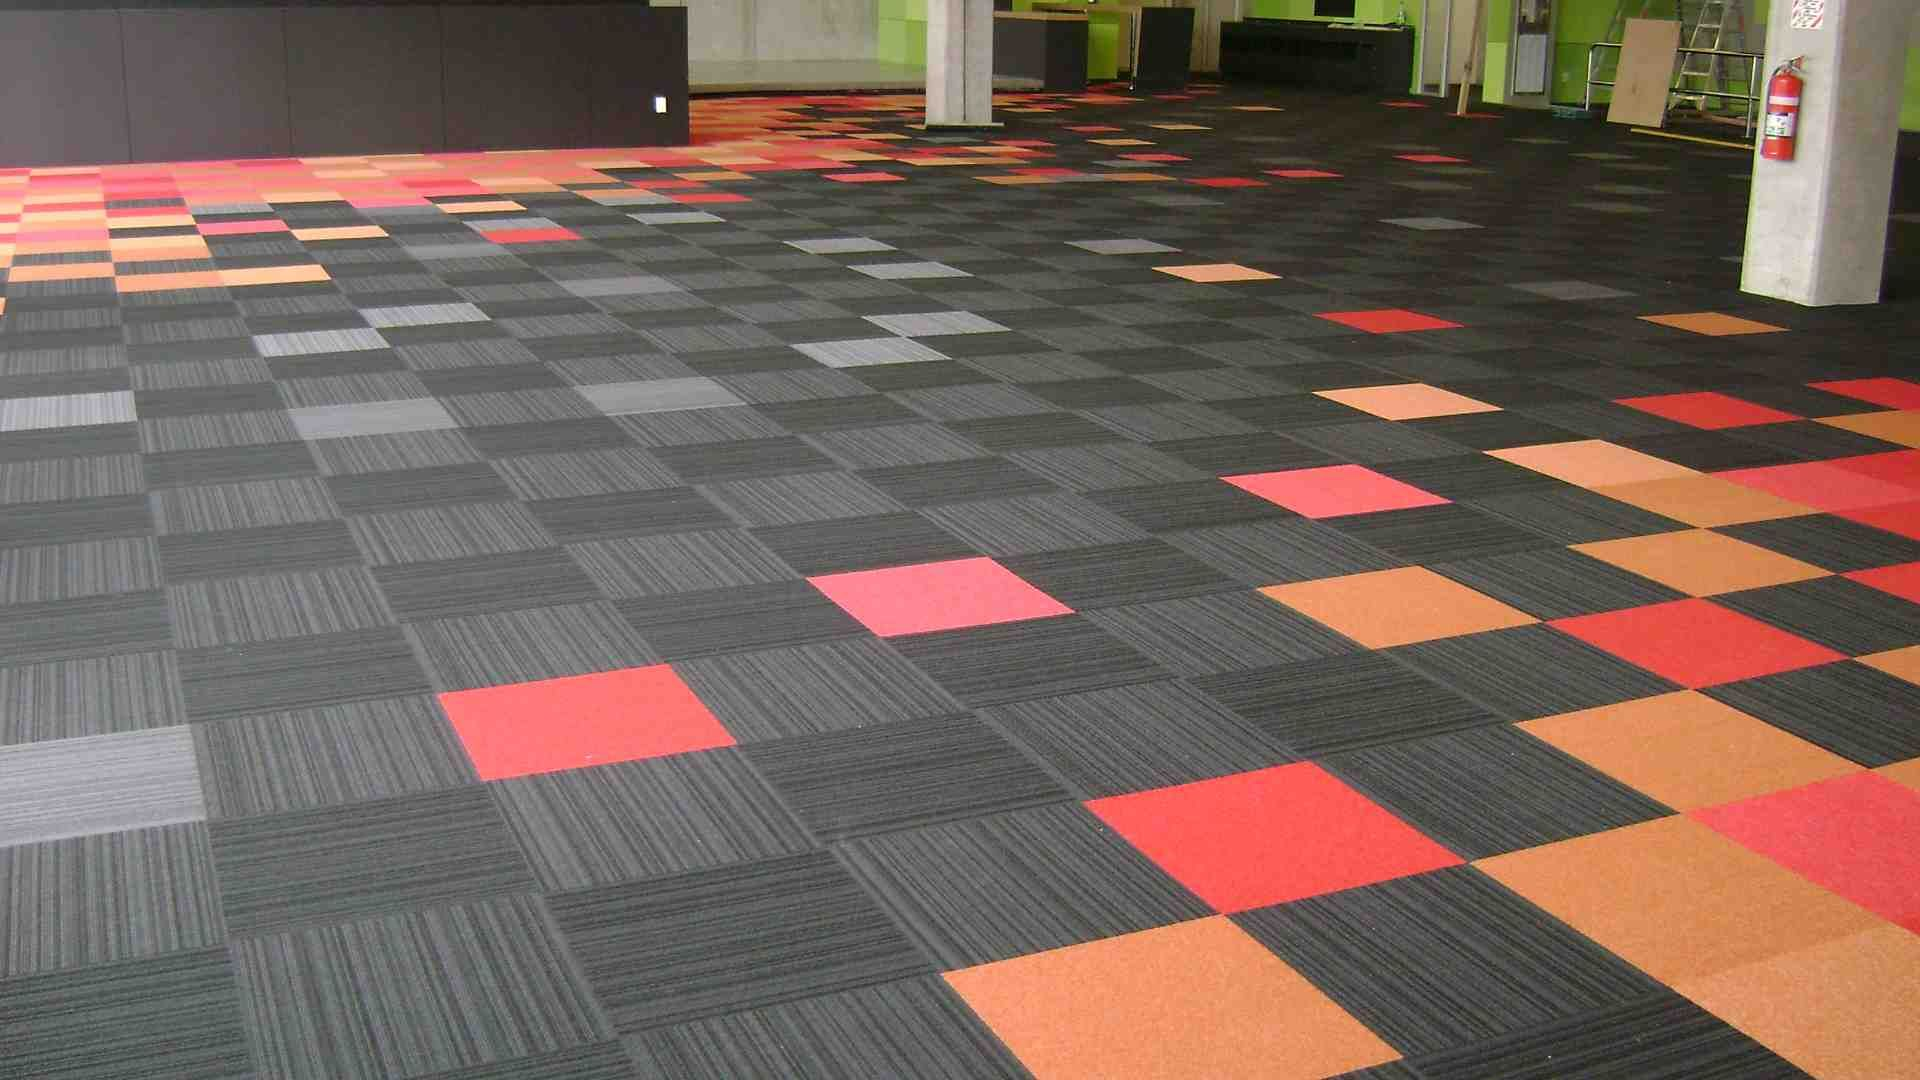 Make a Creative Flooring With Modular Carpet Tile | Home ...